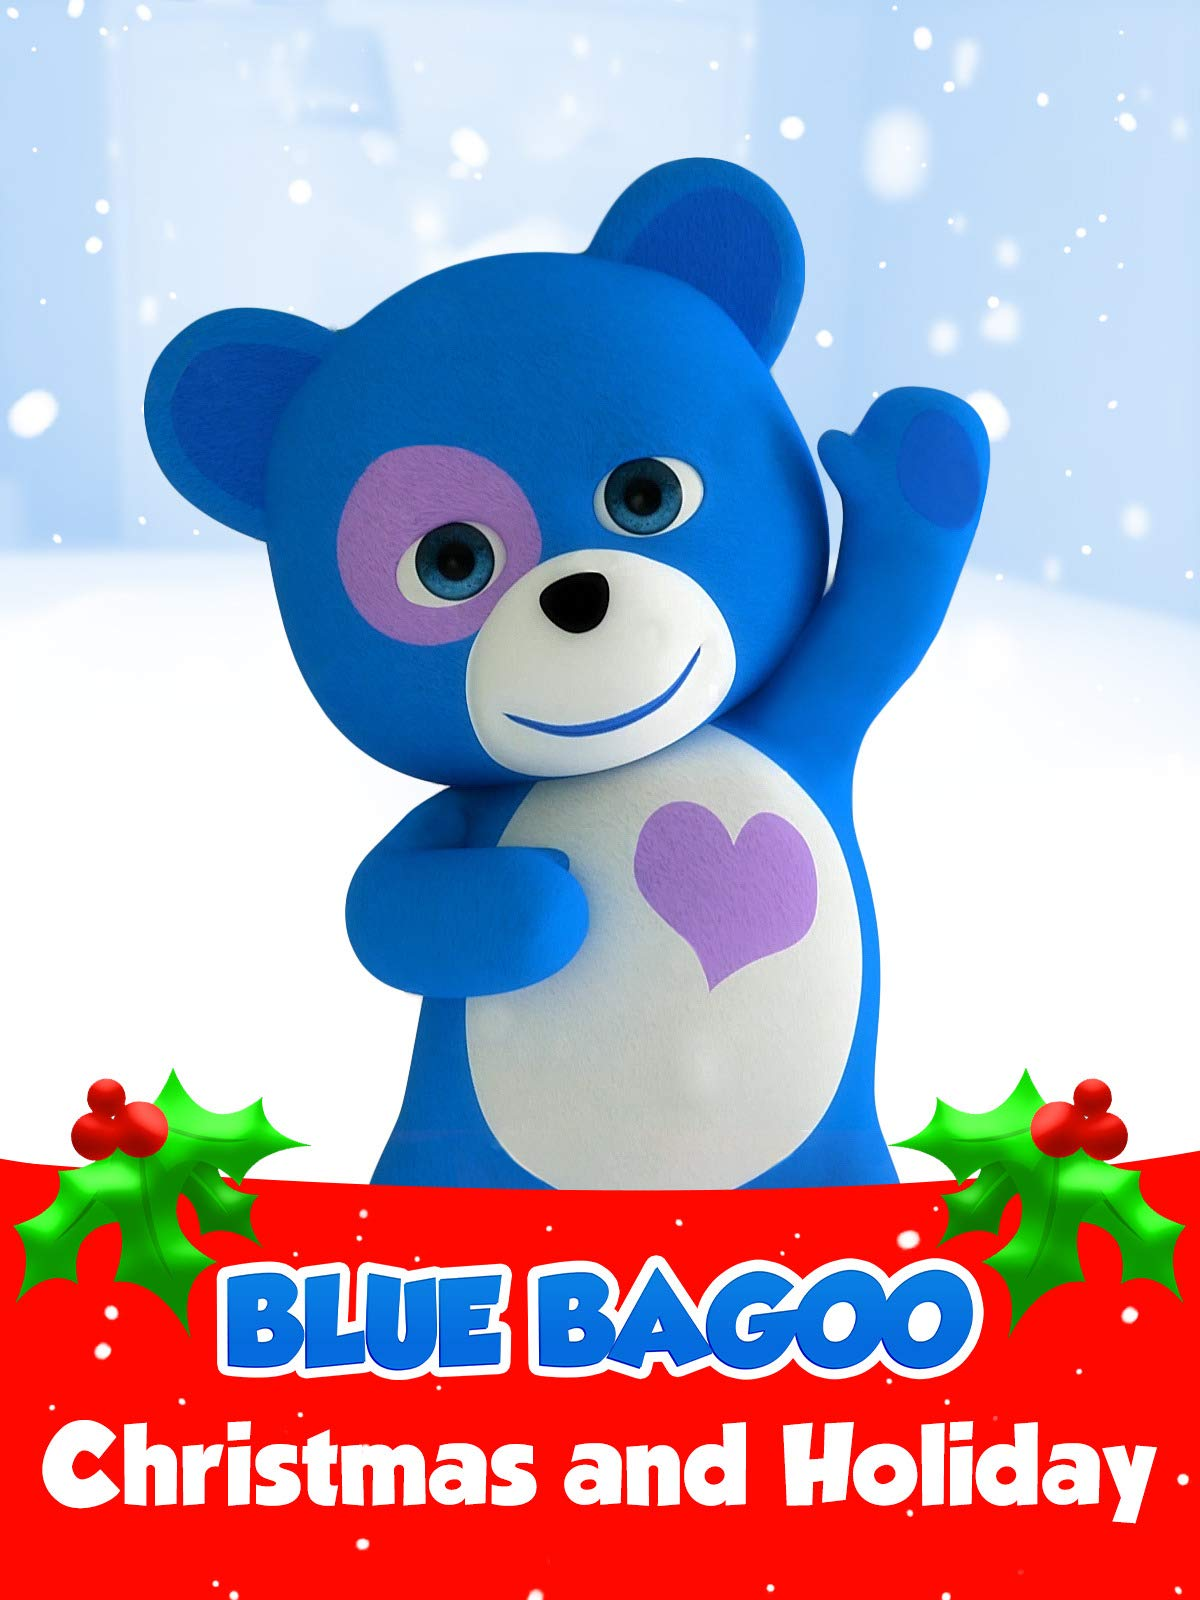 Blue Bagoo Christmas & Holiday